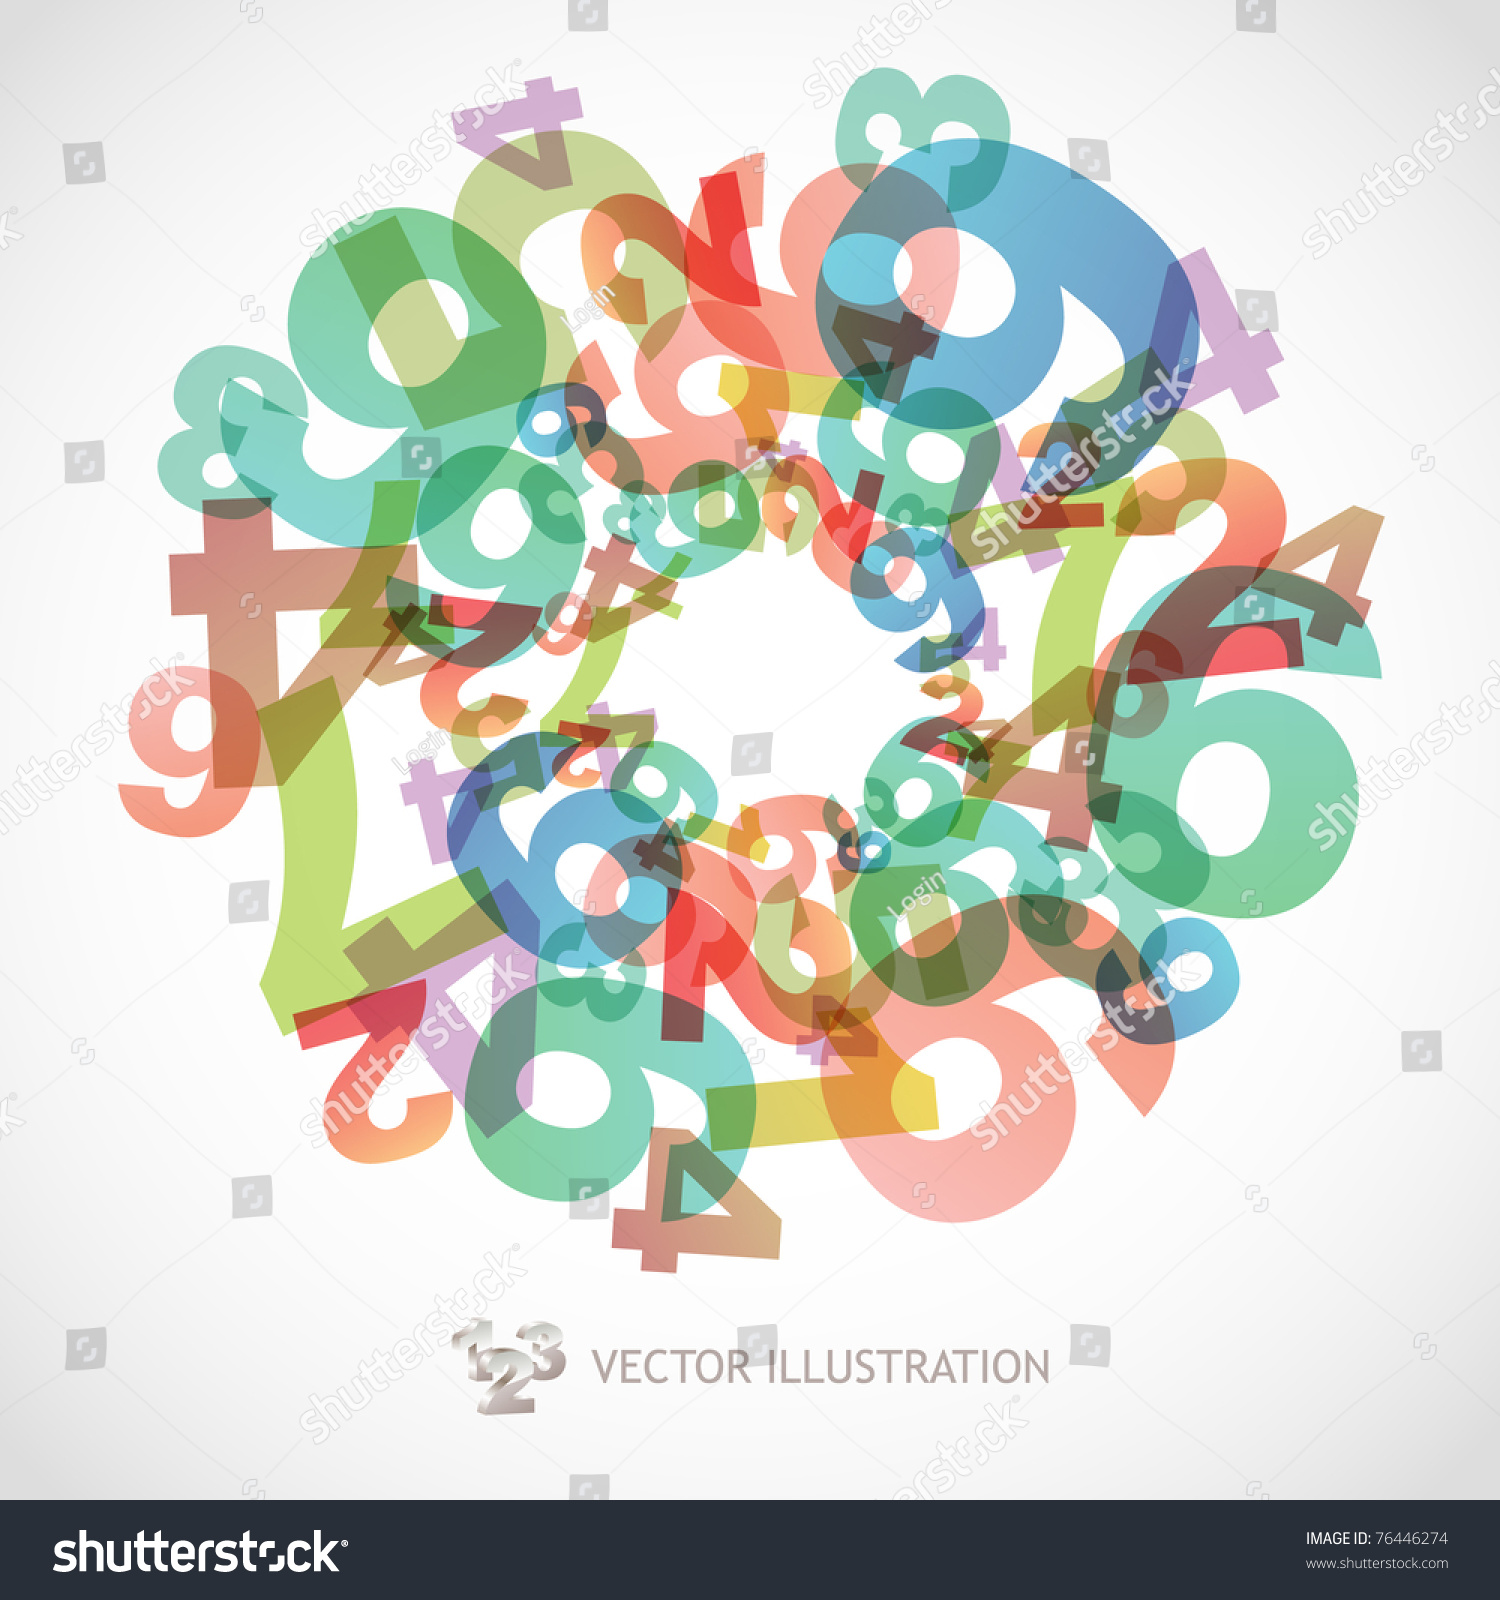 Mathematics background numbers abstract math symbols stock vector mathematics background with numbers abstract math symbols biocorpaavc Images